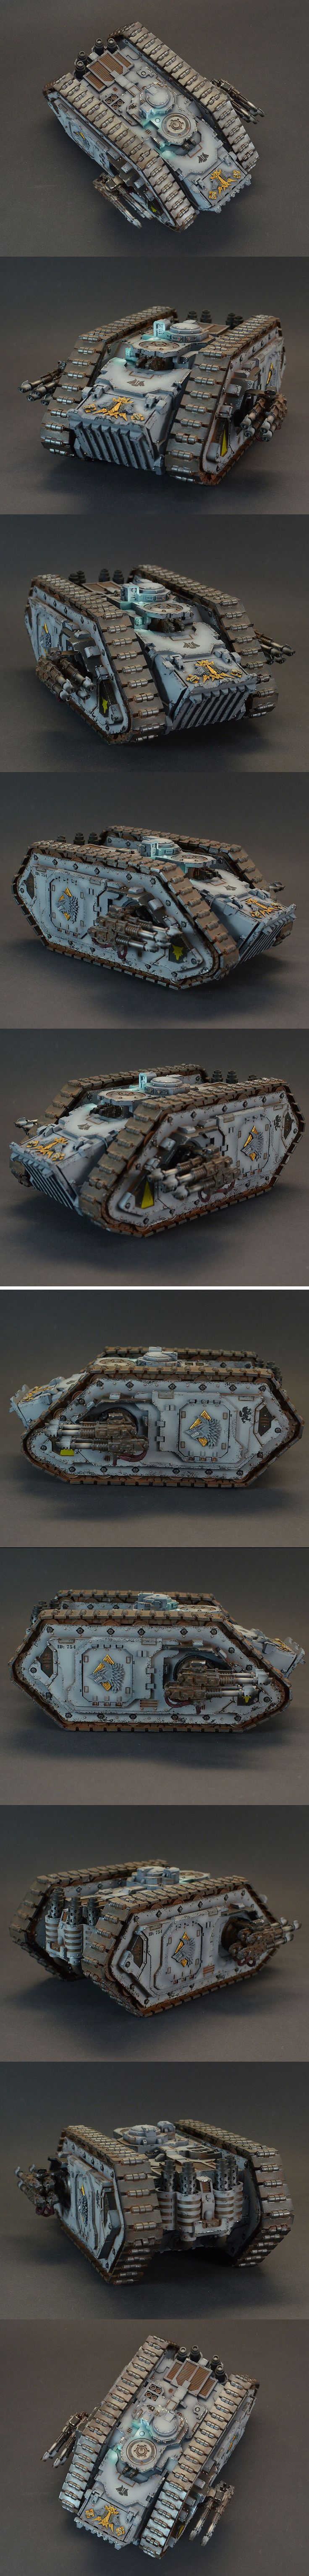 40k - Space Wolves Spartan Assault Tank by JakobMiniatures